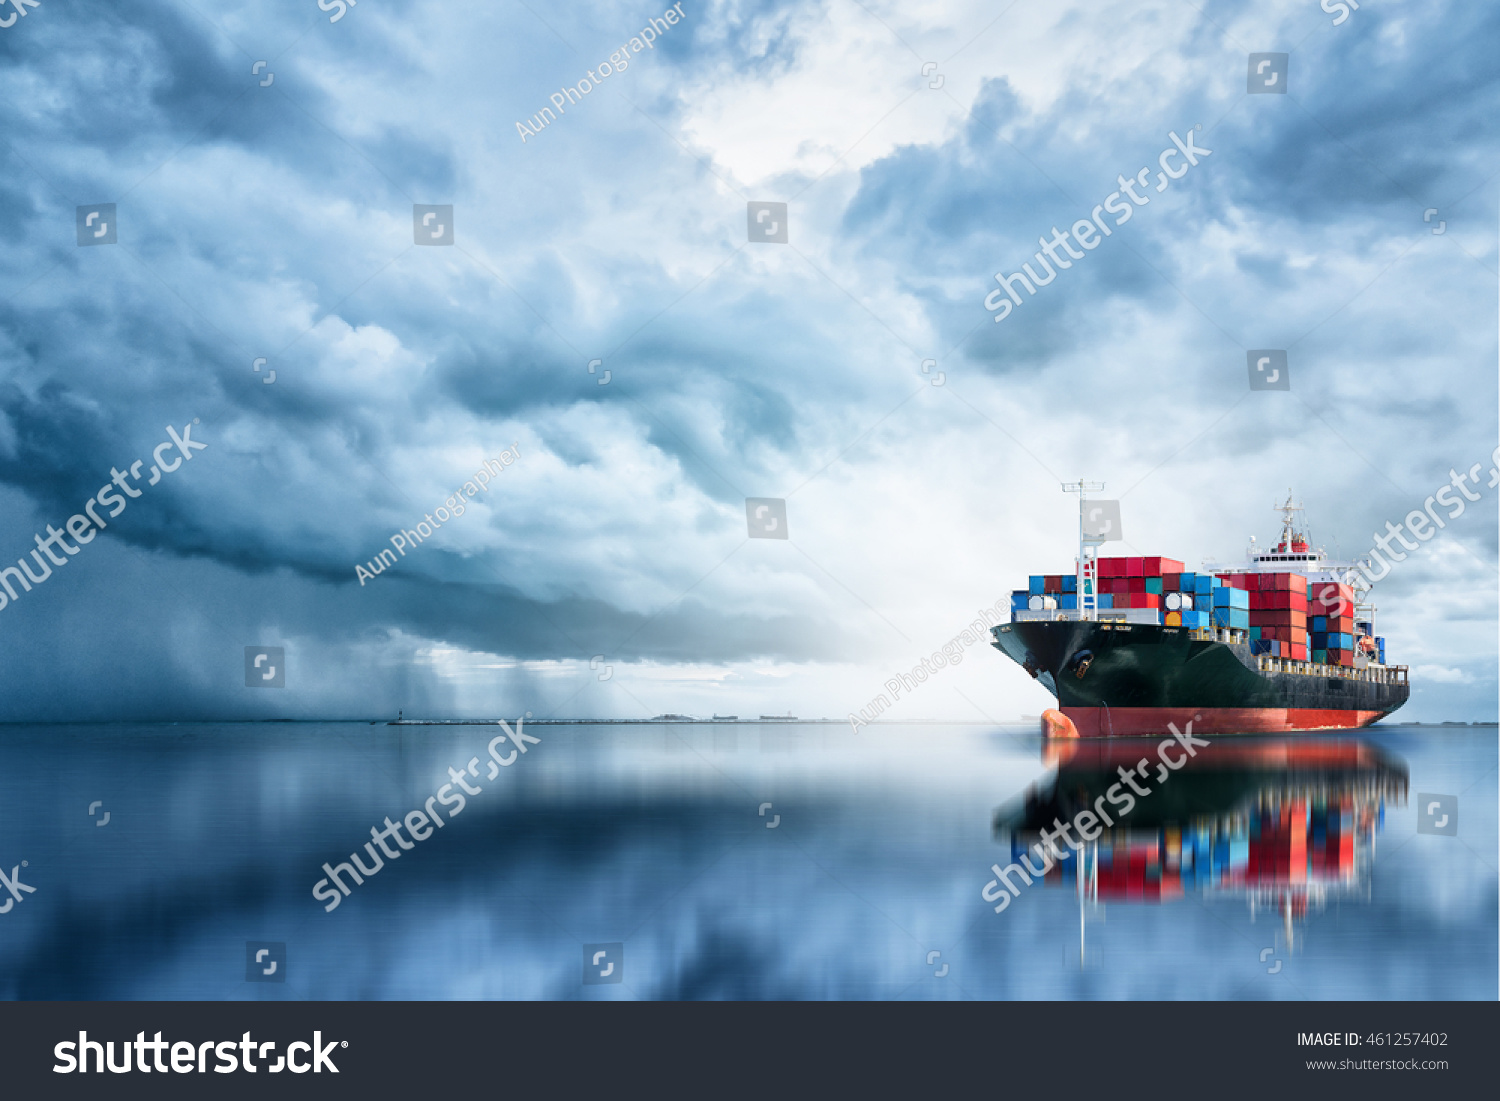 International Container Cargo ship in the ocean, Freight Transportation, Shipping, Nautical Vessel #461257402